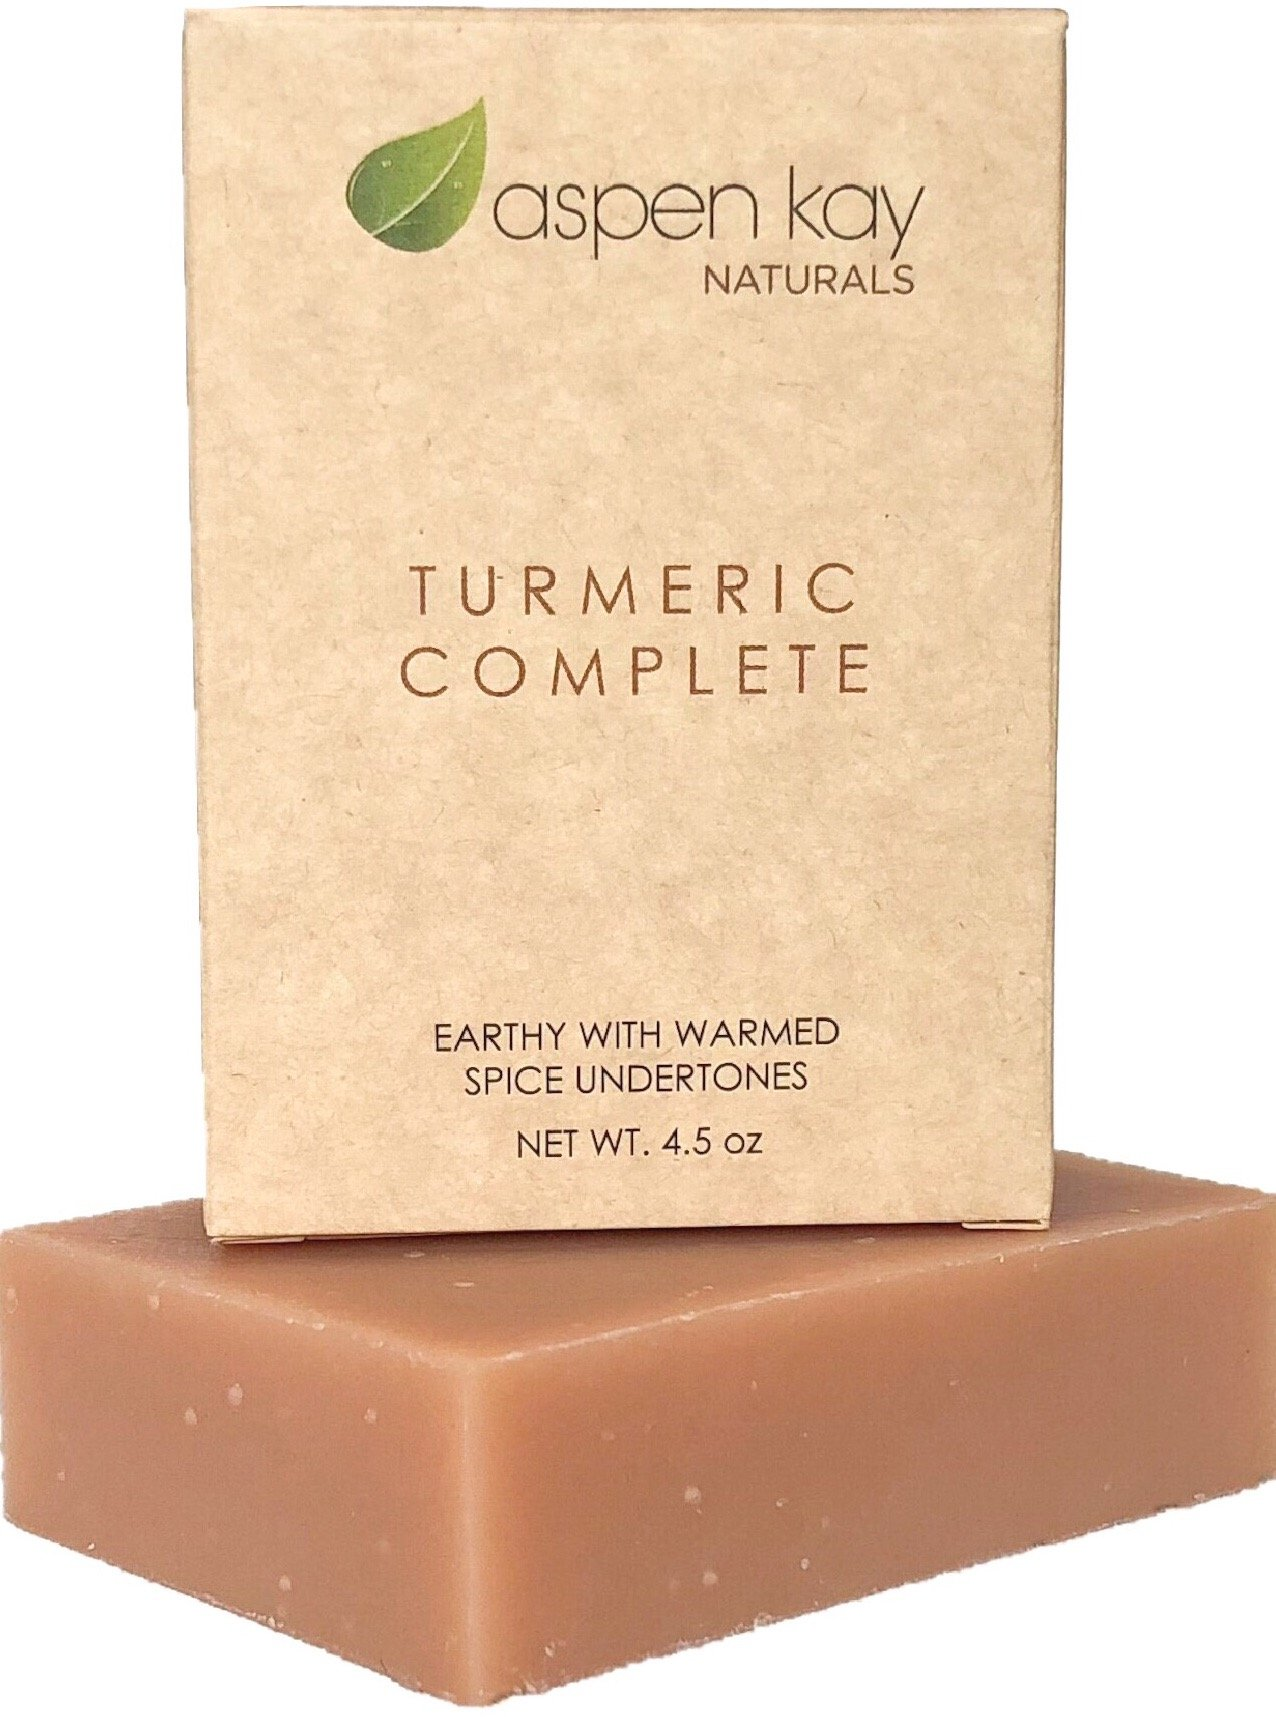 Organic Turmeric Soap - Natural and Organic - Loaded with Organic Turmeric. Gentle Soap. 4.5oz Bar. (Turmeric Complete 1 Pack)